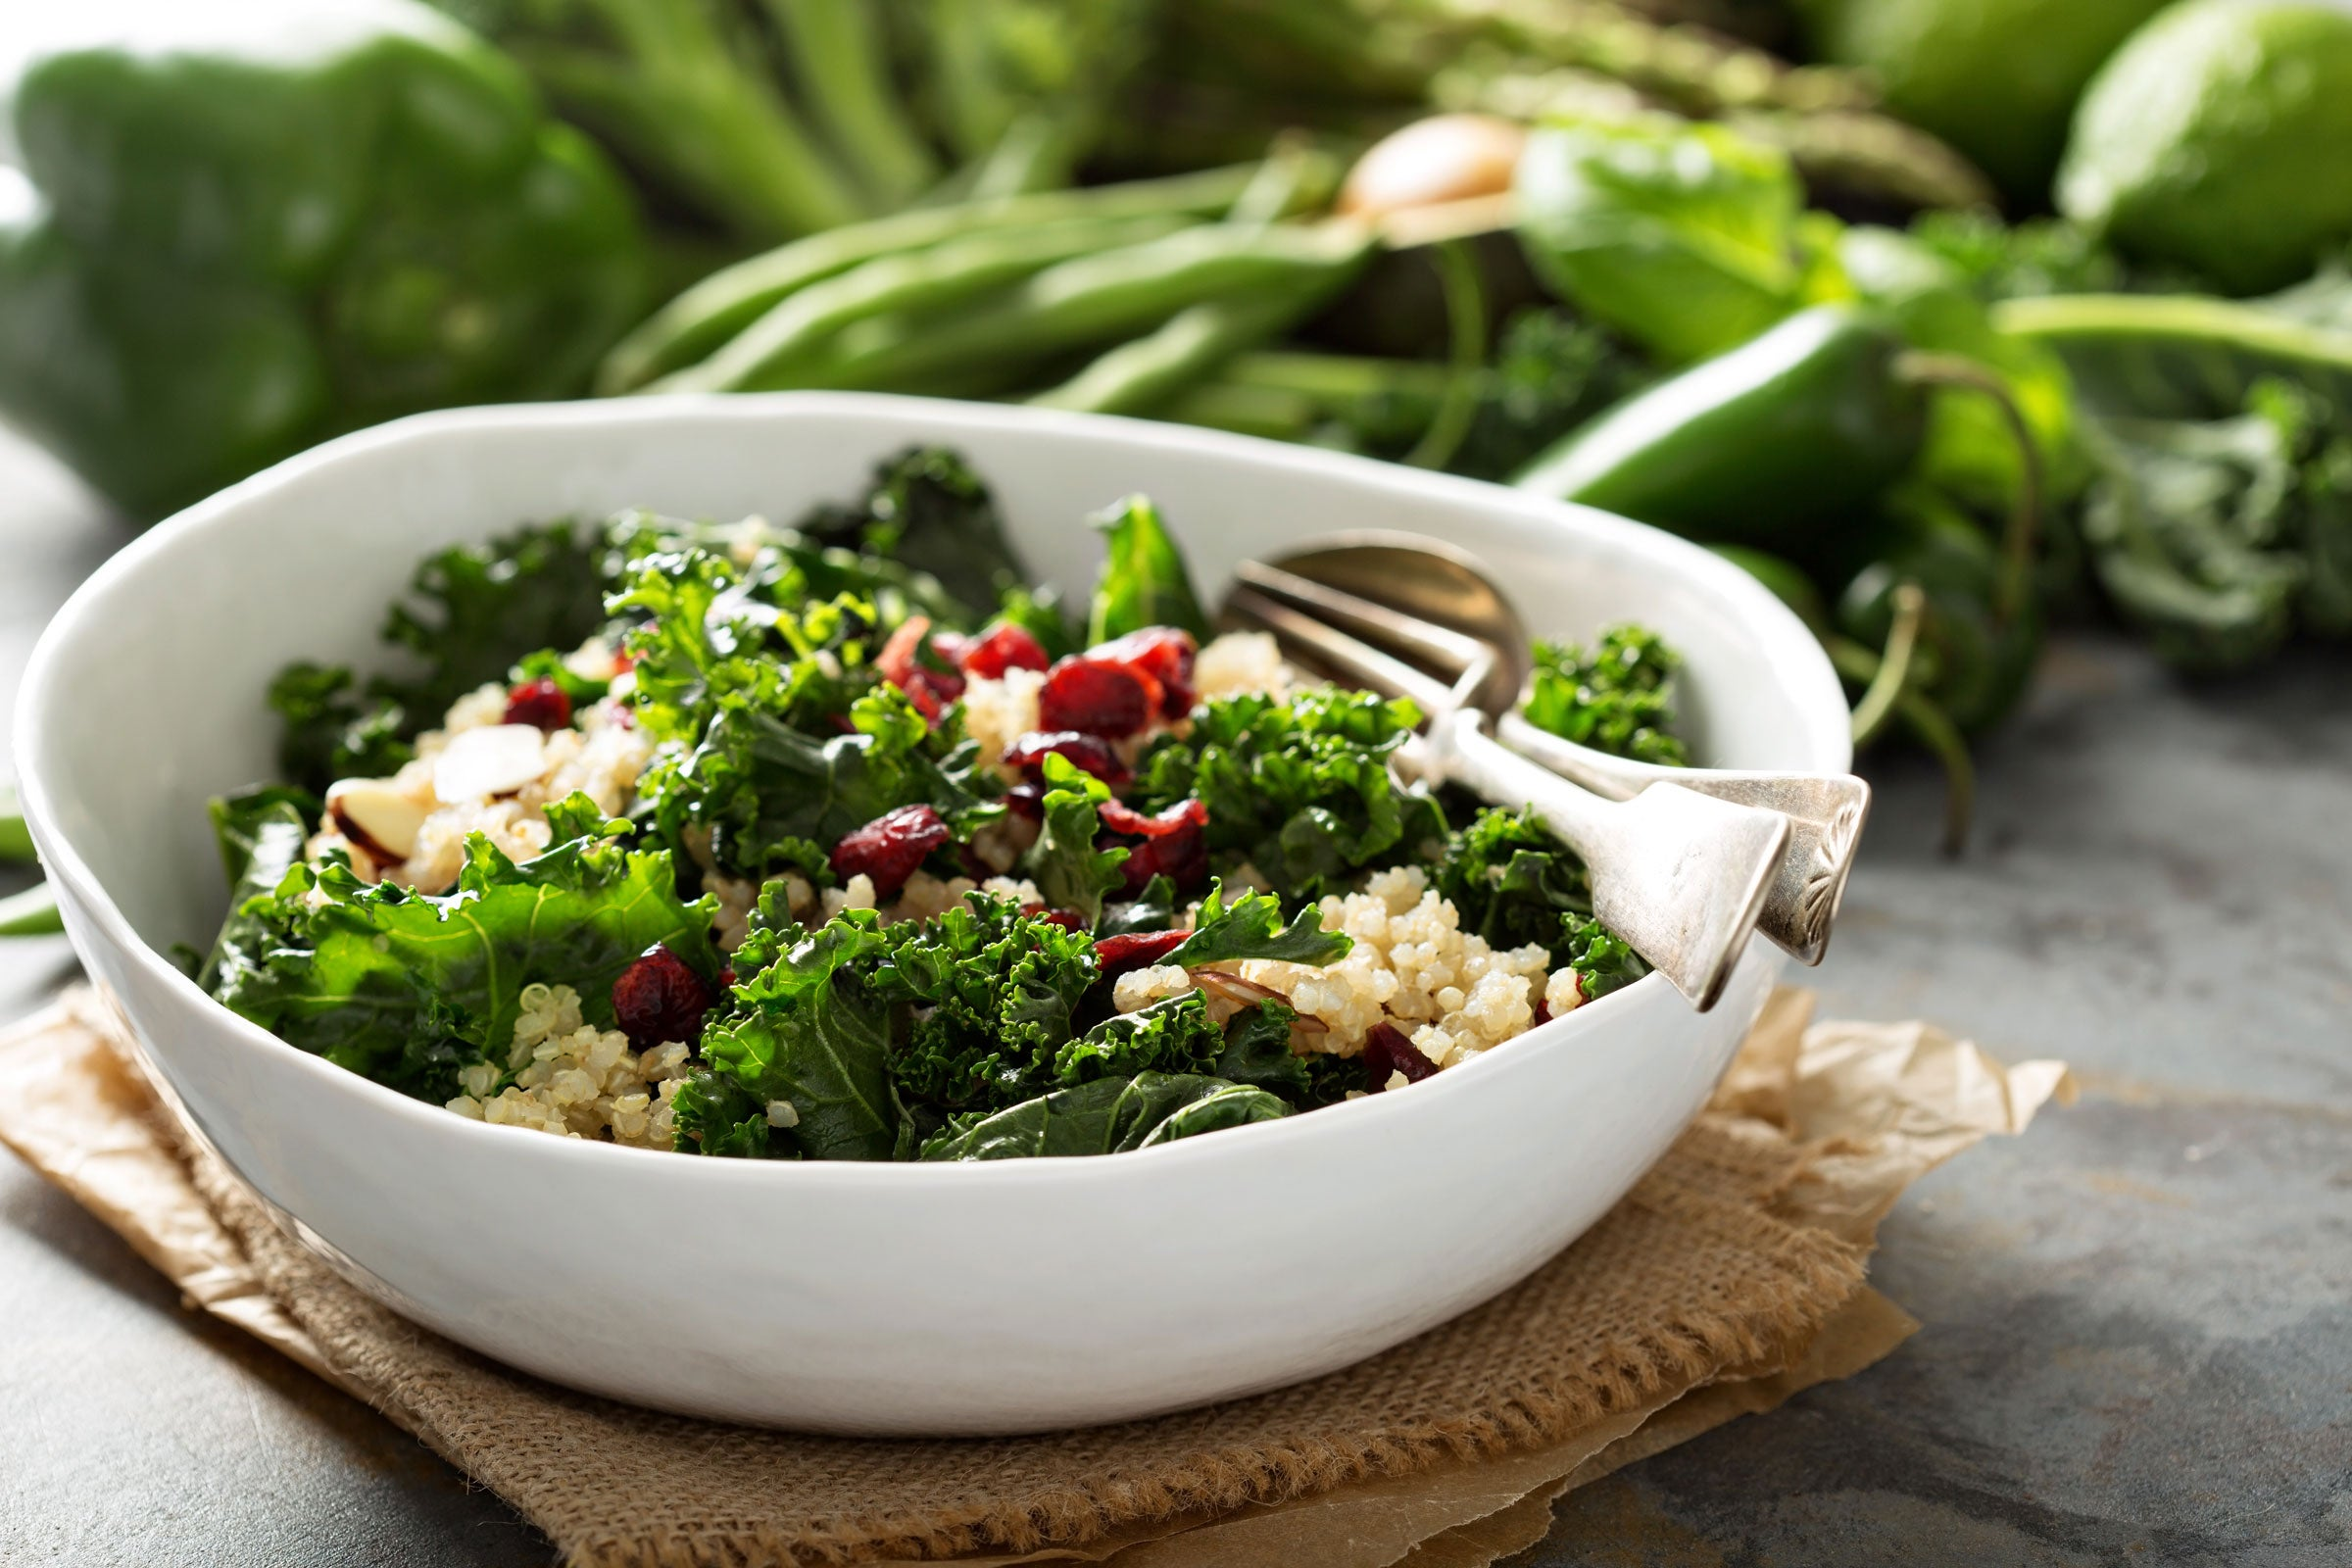 Quinoa Salad Recipe with Cherries, Walnuts, and Feta